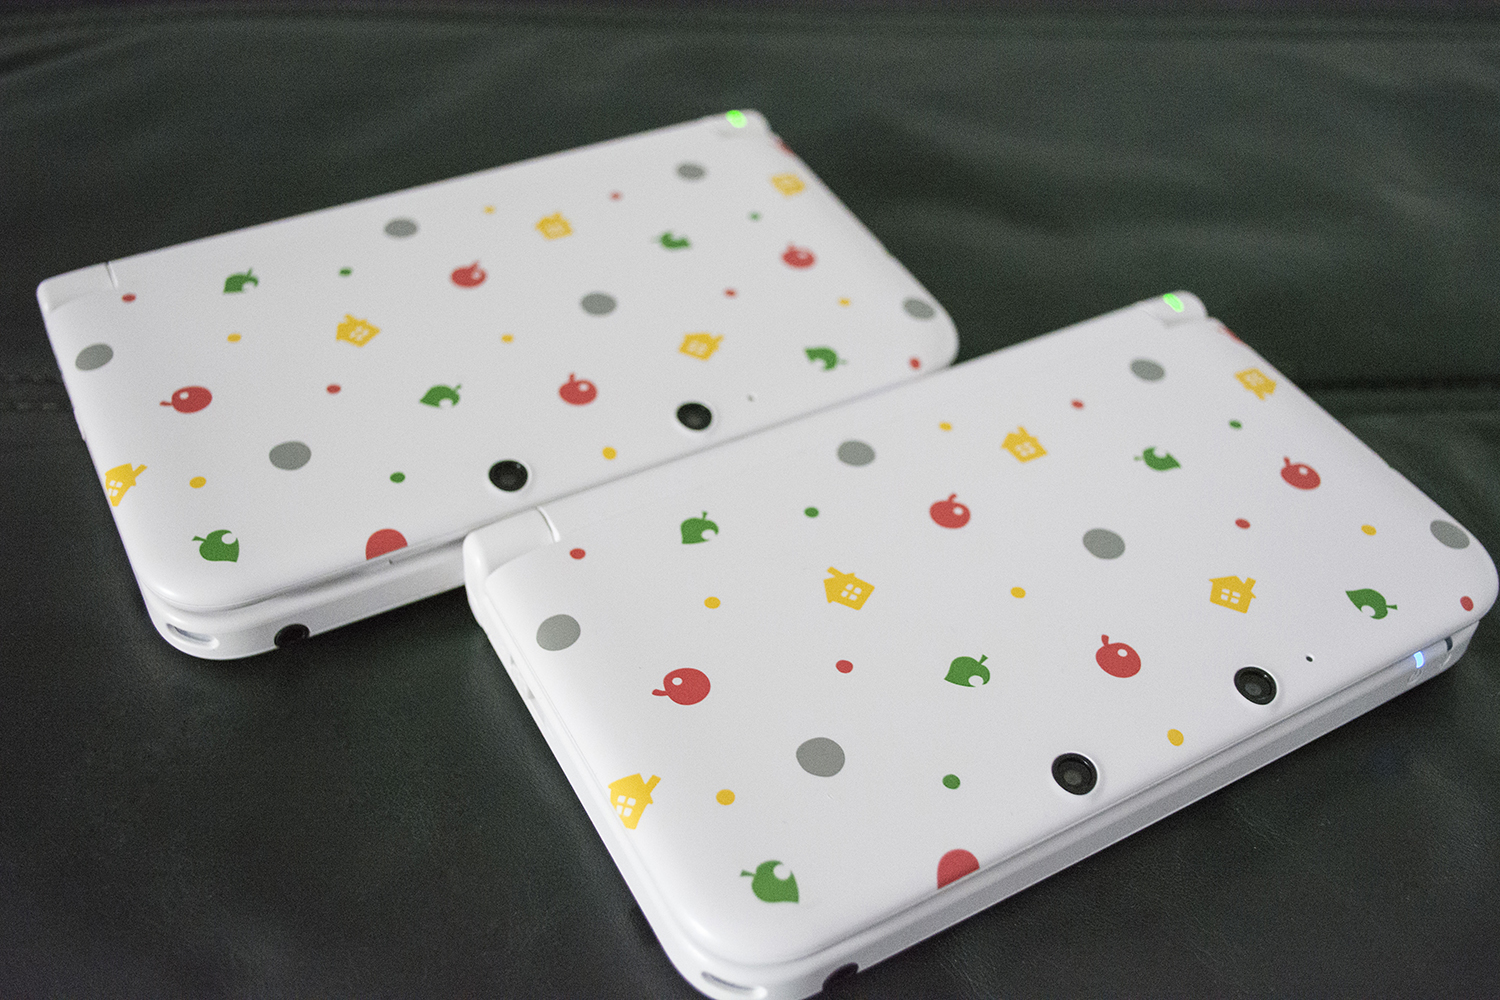 Animal Crossing Nintendo 3DS XL Closed Side By Side